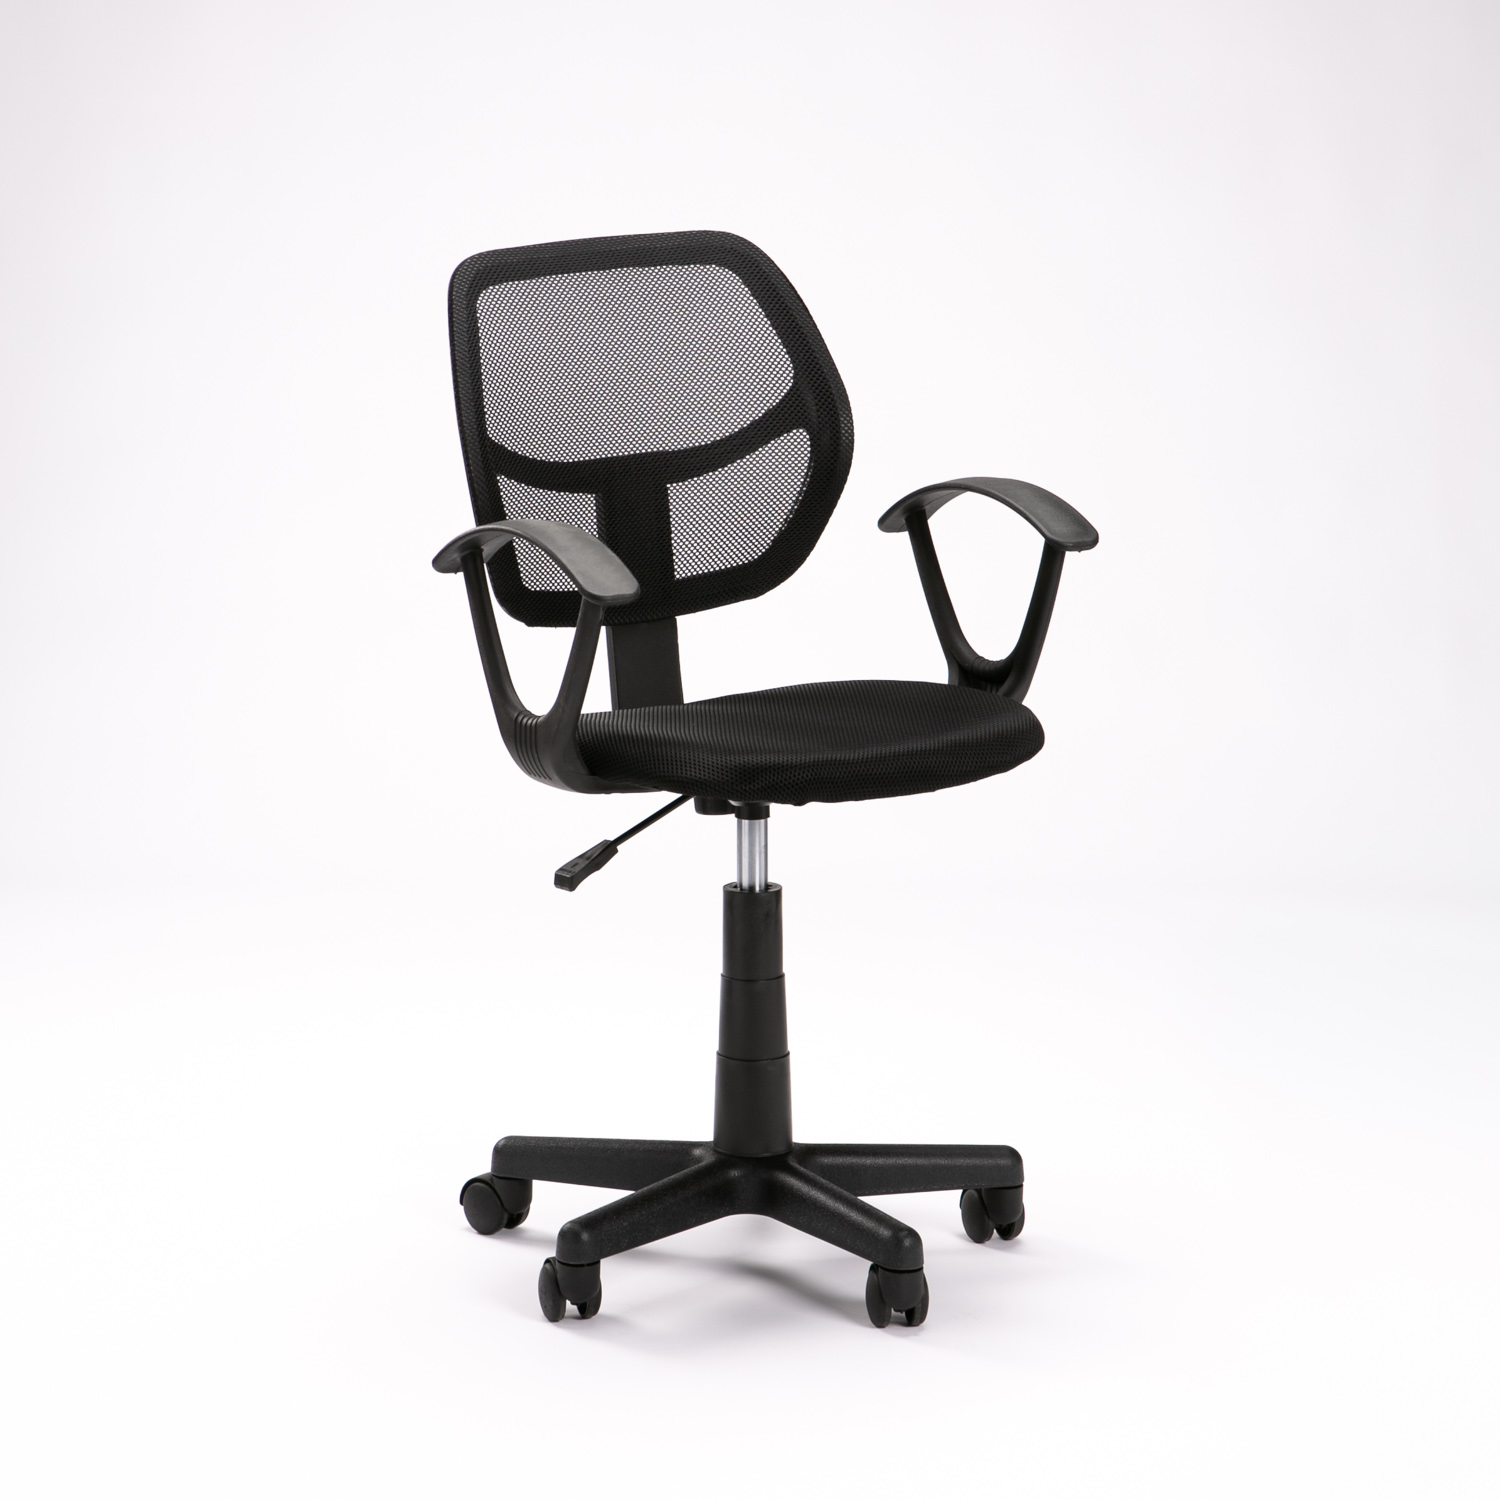 Office Chair Of556 With Arms - Black